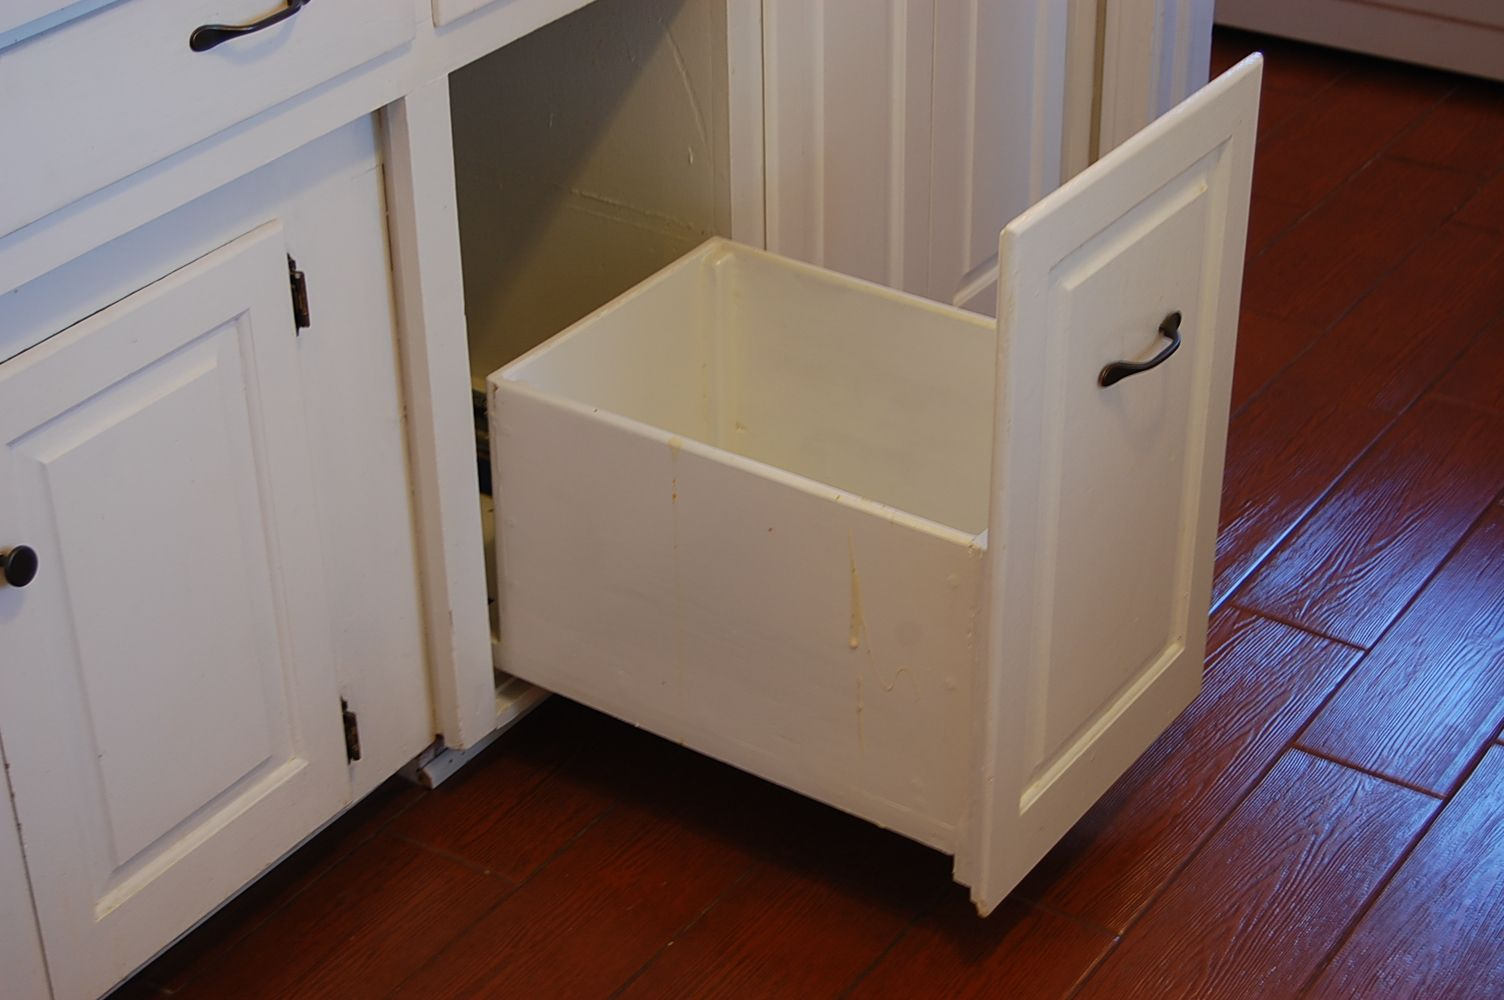 Kitchen Cabinet Trash Bin Slide Out Trash Can Drawer To Put In Place Of The Removed